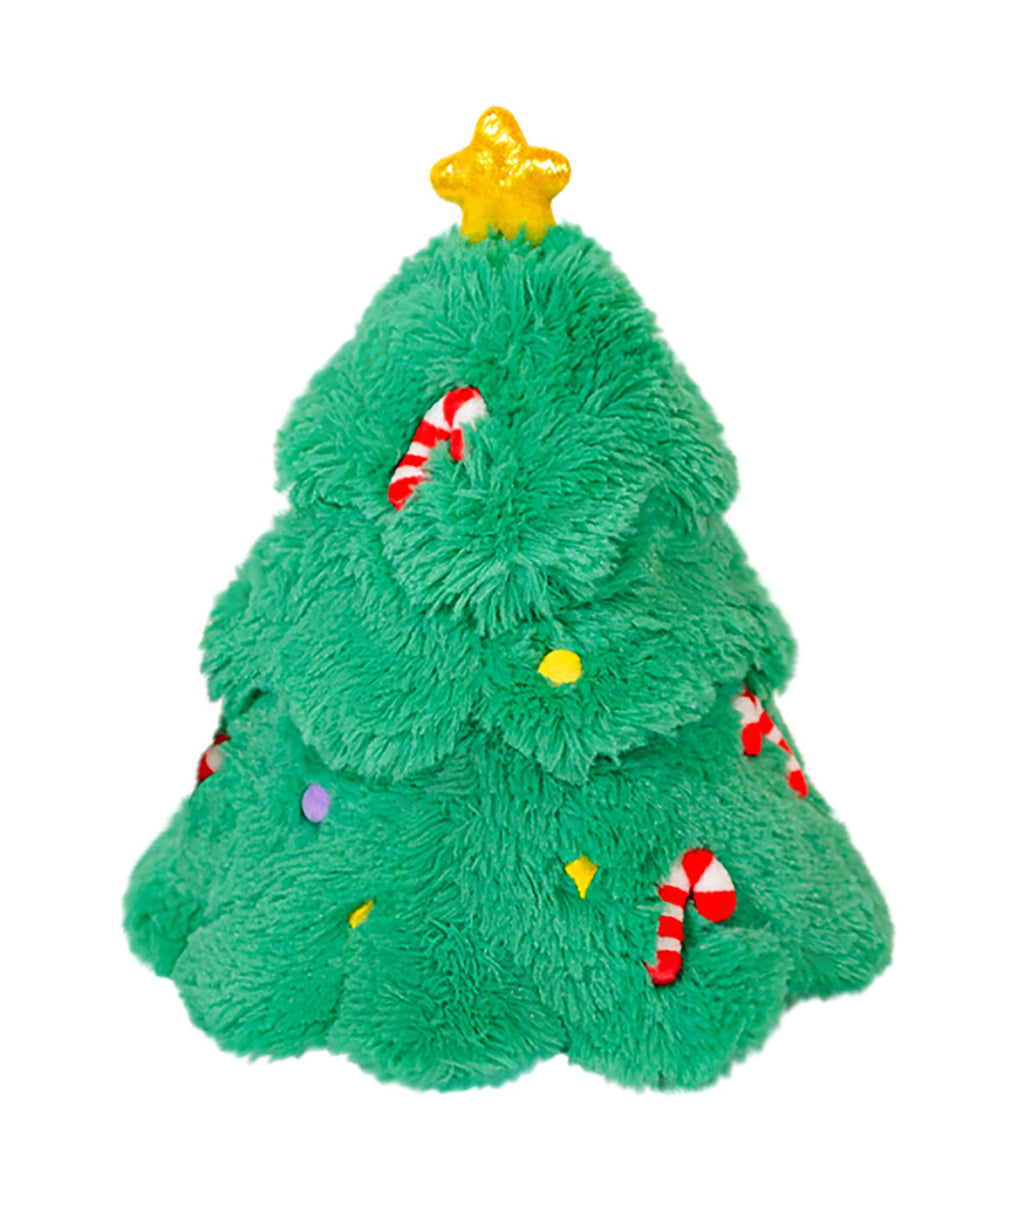 Squishable Mini Christmas Tree